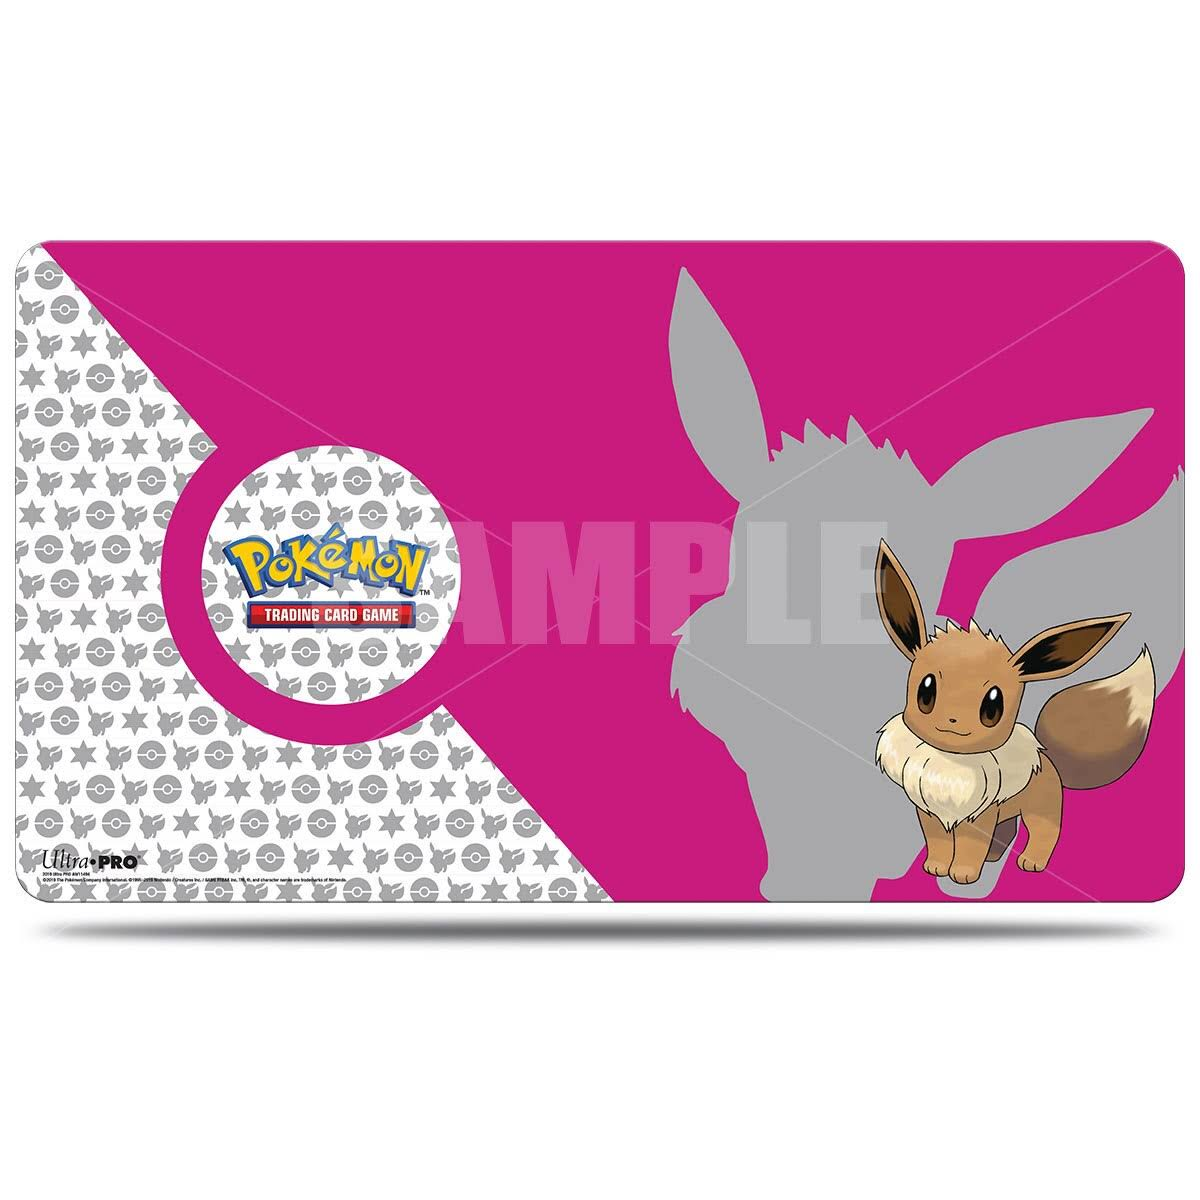 Pokemon Eevee 2019 Playmat